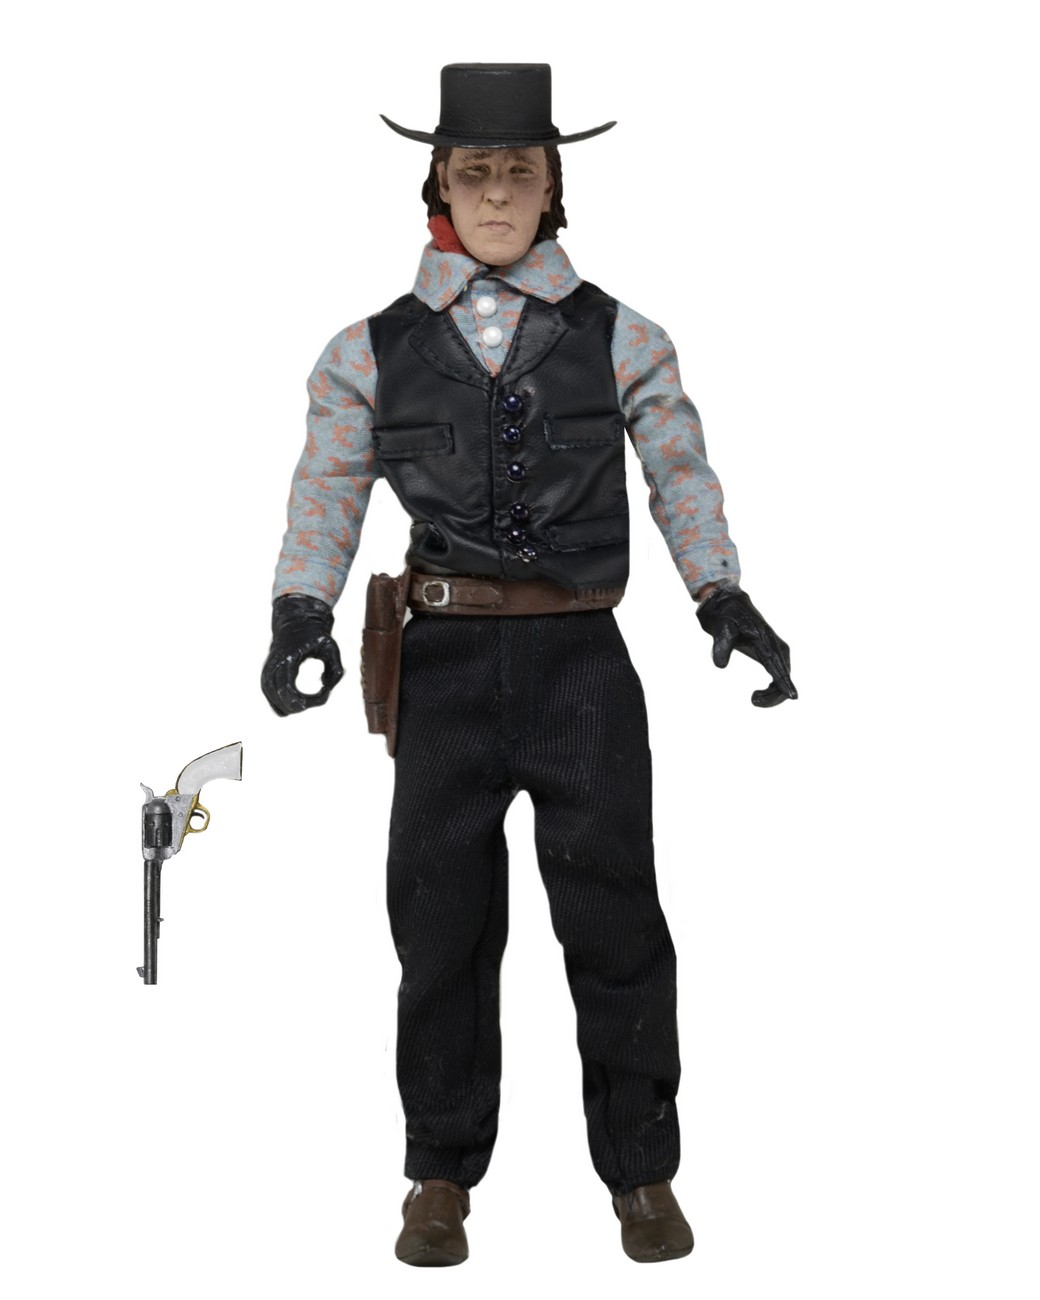 Joe Gage The Cow Puncher The Hateful Eight By Neca